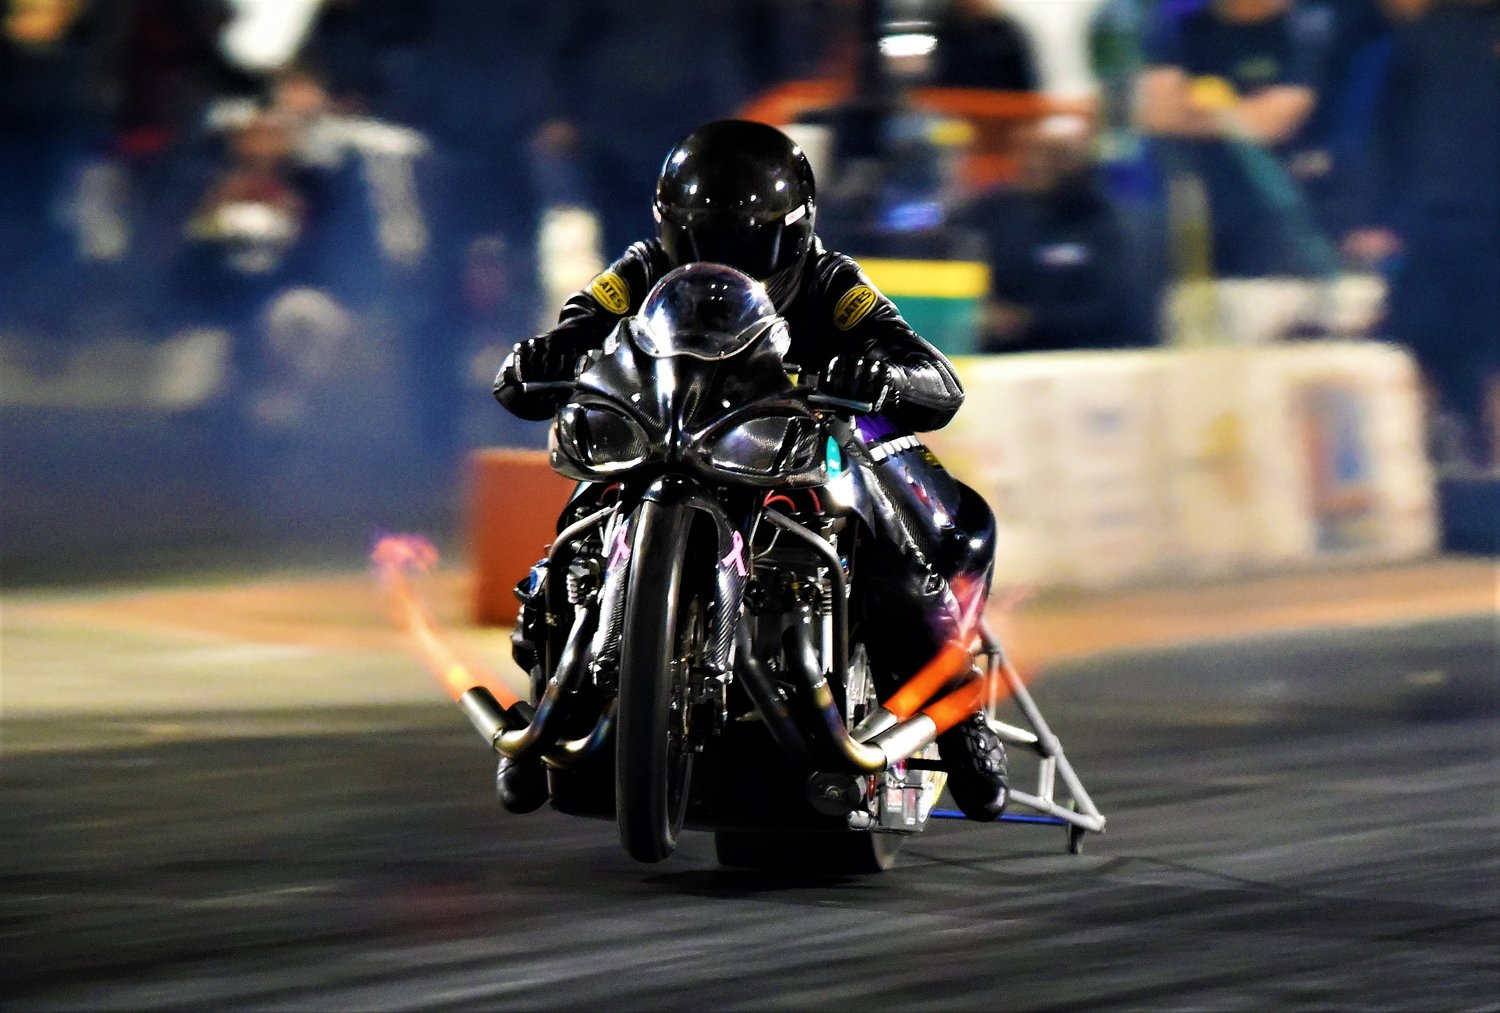 Ronnie Smith of Pasadena has been racing motorcycles for 25 years, first in motocross and for the last six years drag-racing motorcycles, but 2018 proved to be his most successful year to date.